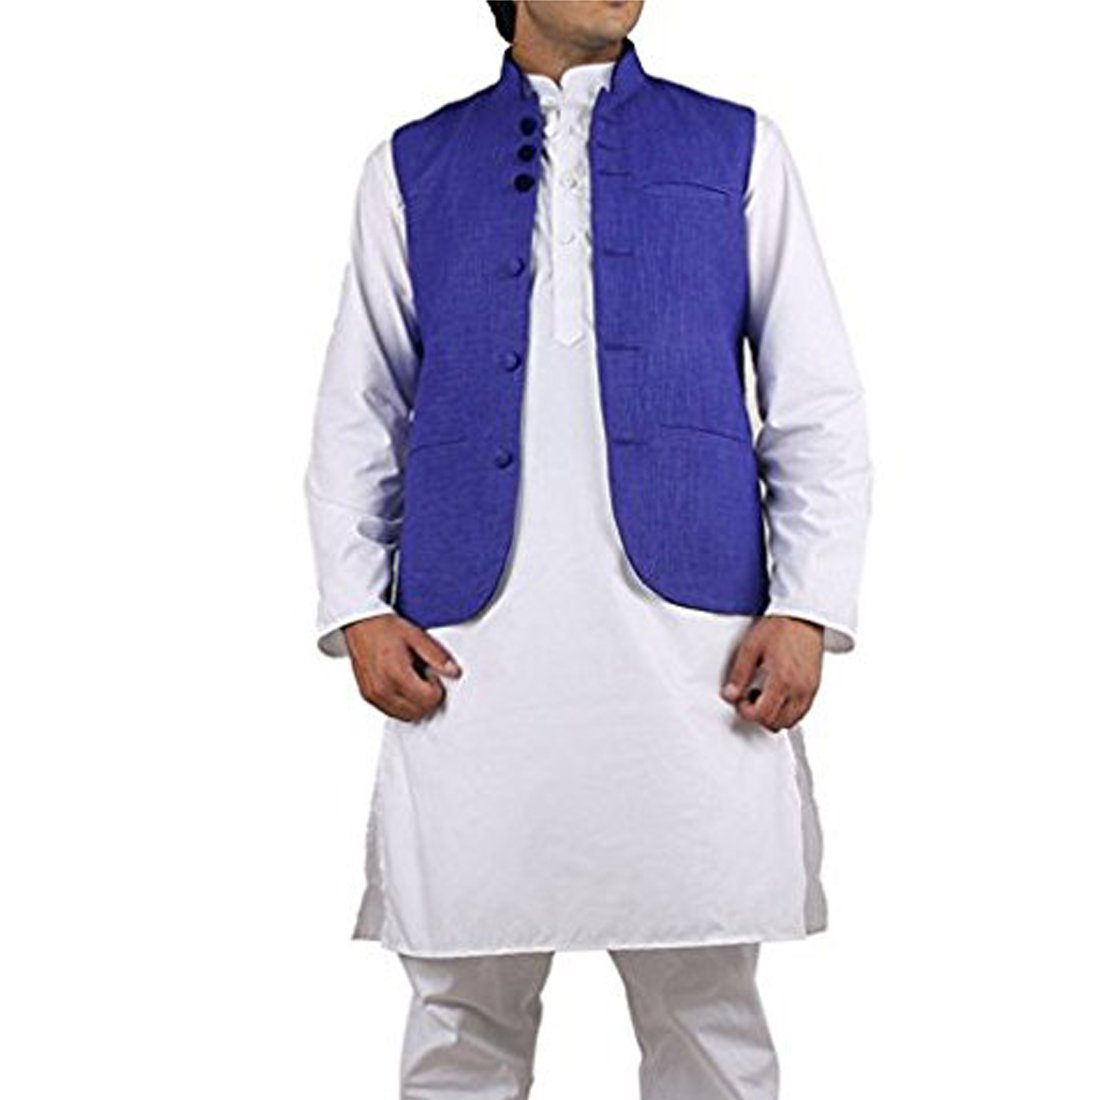 Royal Kurta Men's Cotton Nehru Jacket Medium Blue